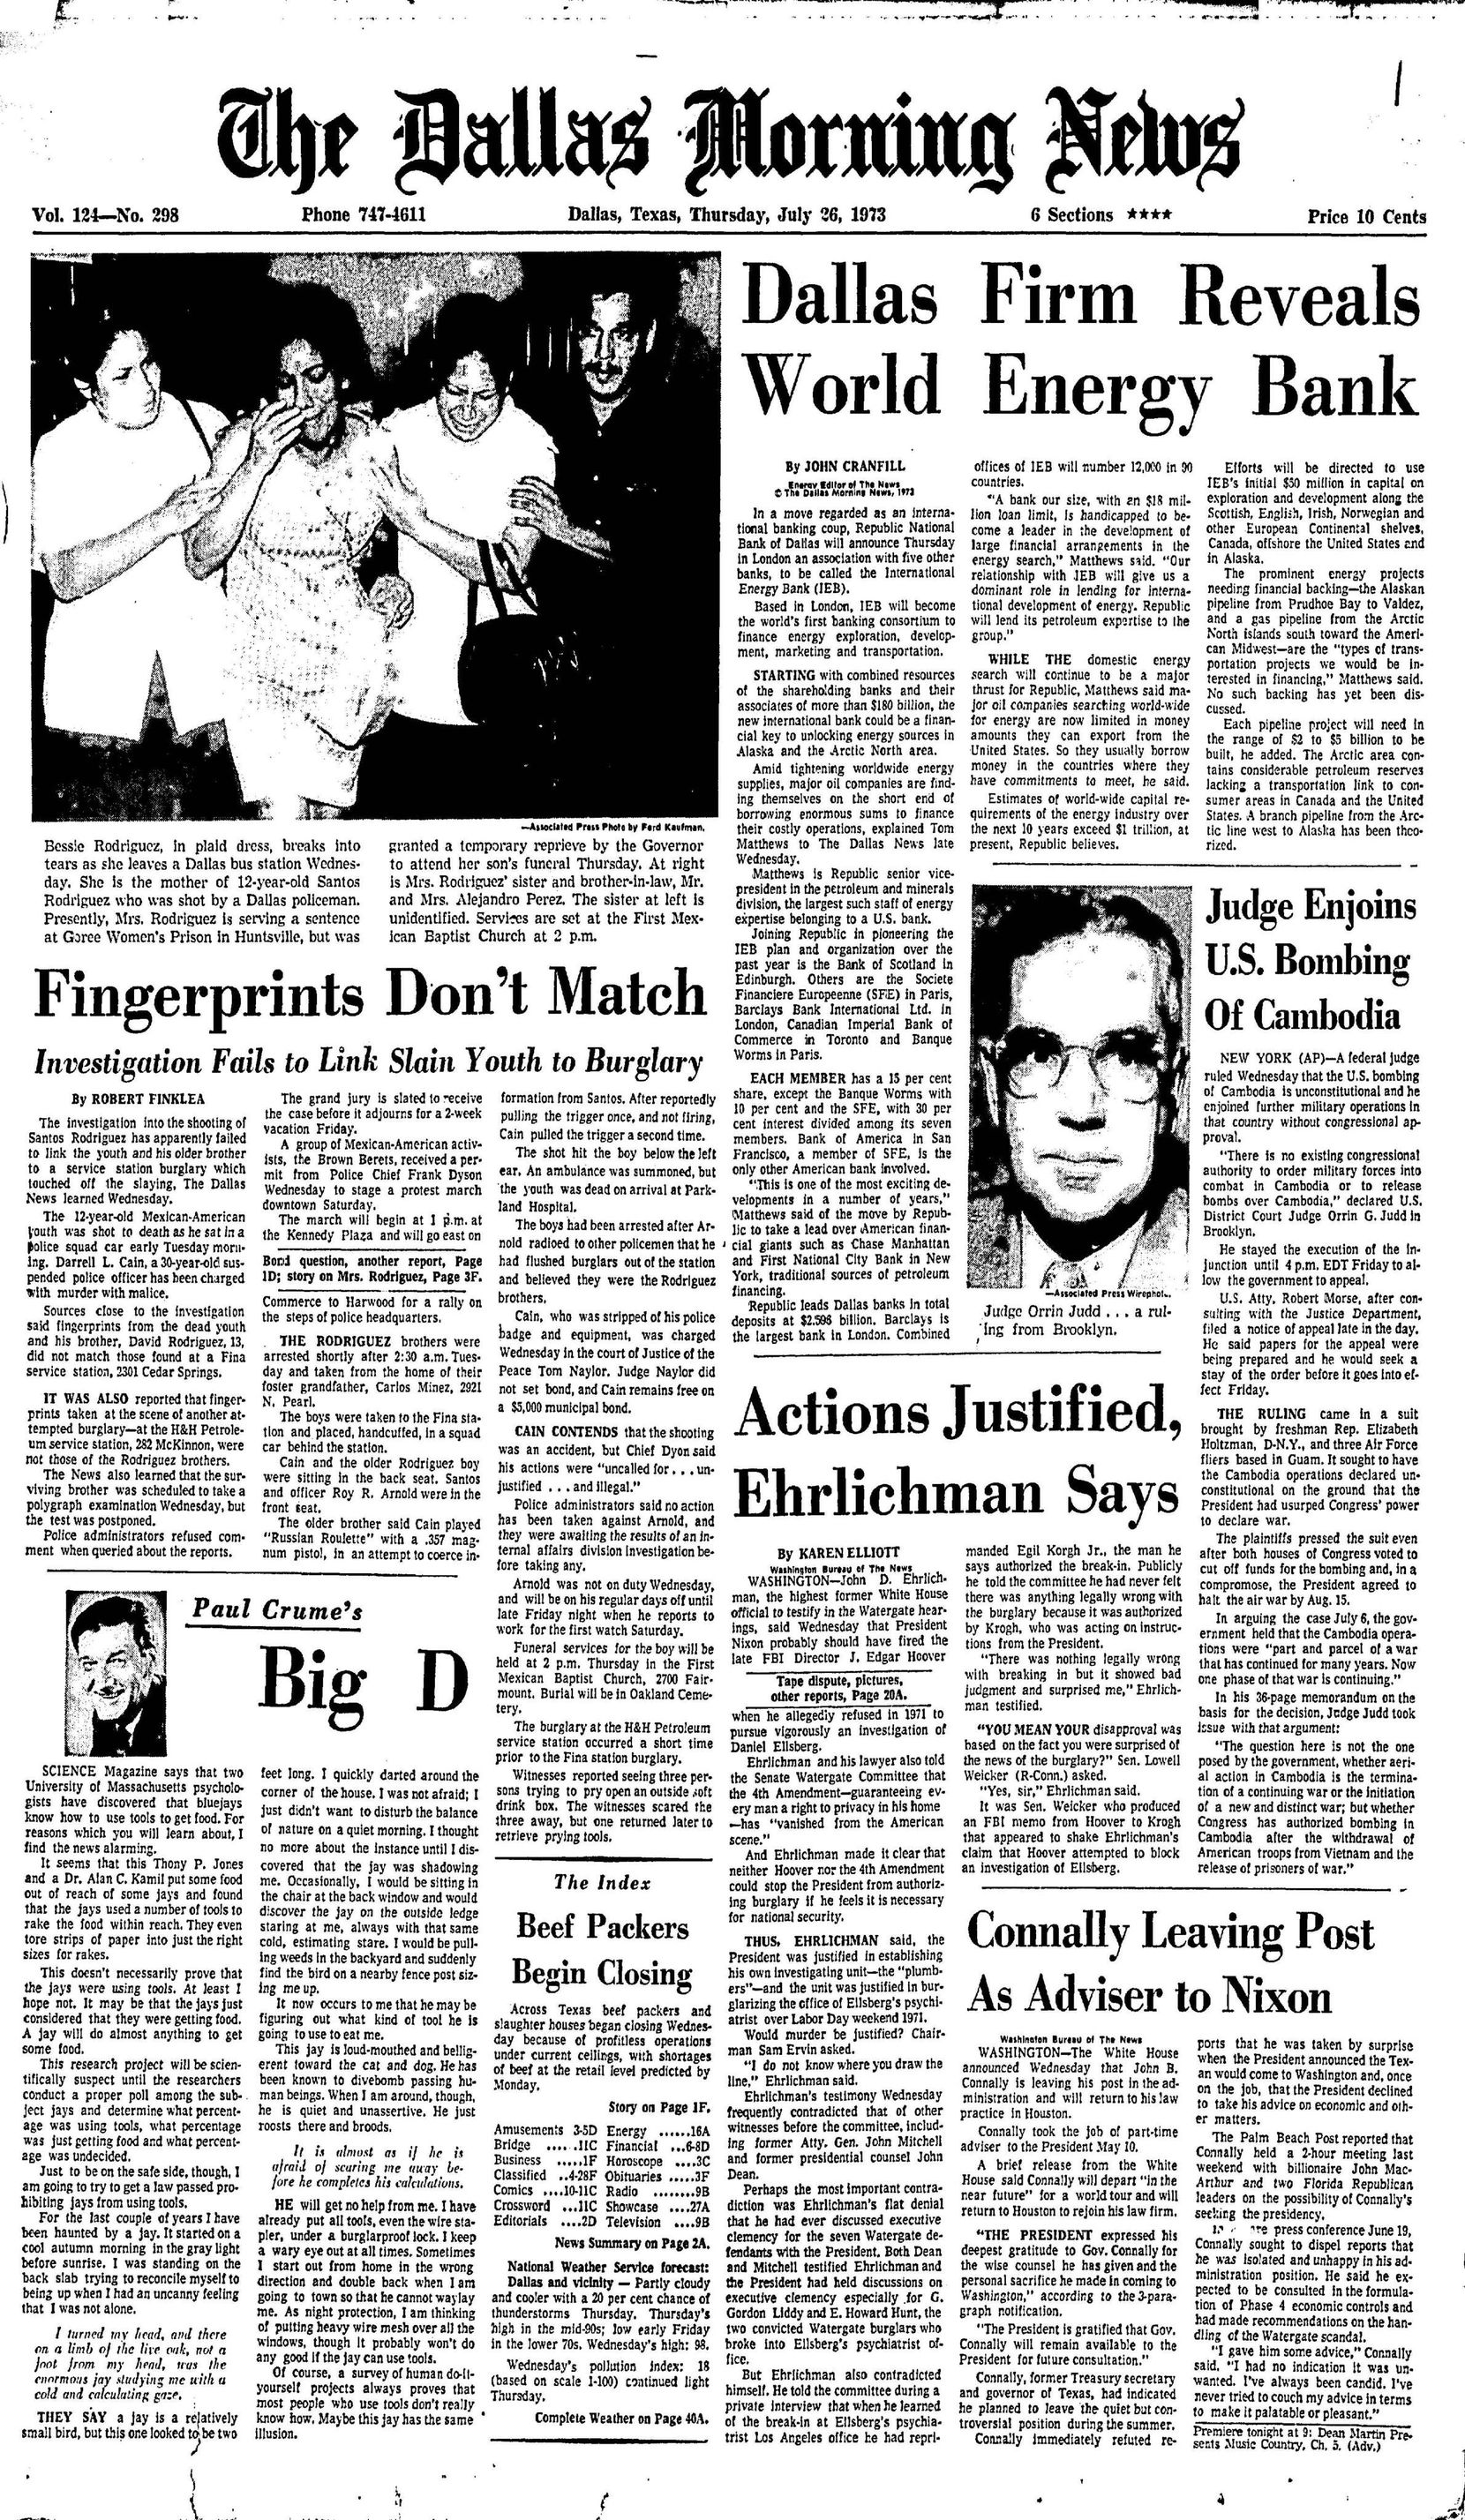 The front page of The Dallas Morning News on July 26, 1973, featured a story detailing the investigation of the murder of 12-year-old Santos Rodriguez. The headline proclaims that fingerprints taken from the scene of the burglary of which Santos was accused were not his.